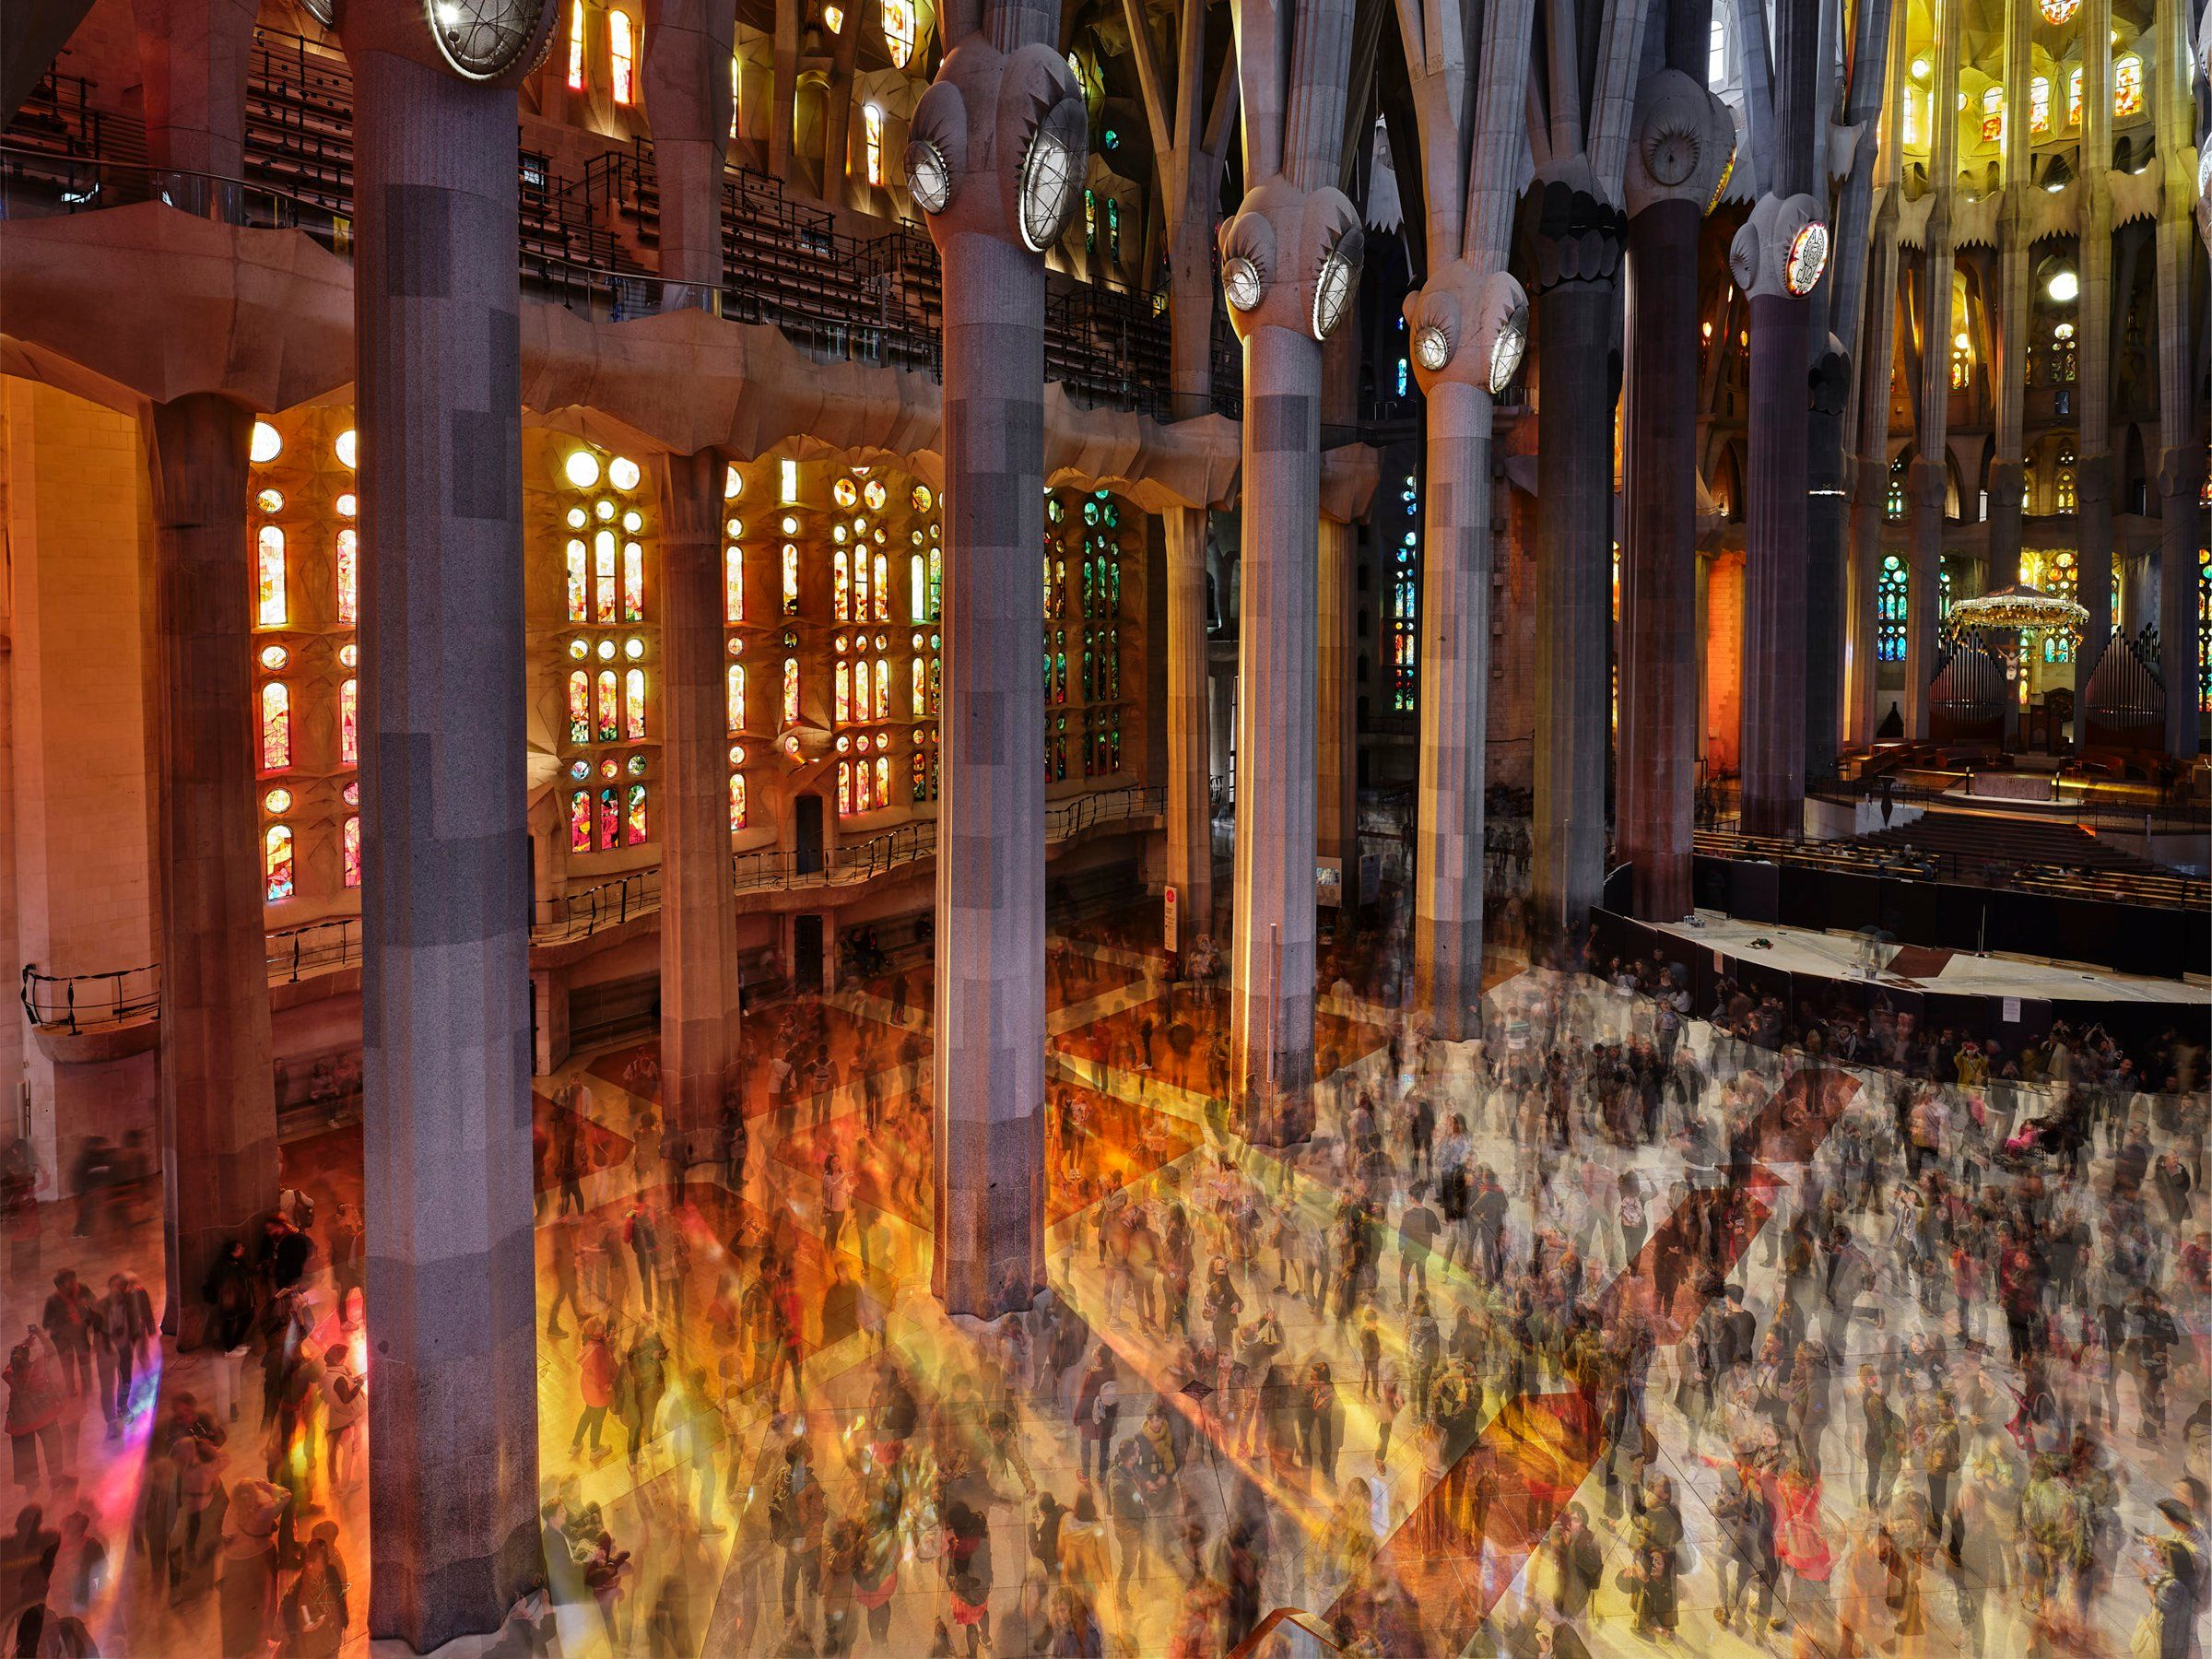 Visitors inside the nave of Barcelona's Sagrada Familia on March 18. The entry fees of roughly 4 million visitors each year help provide the money needed to finish construction. A team is working to complete Sagrada Familia by 2026.